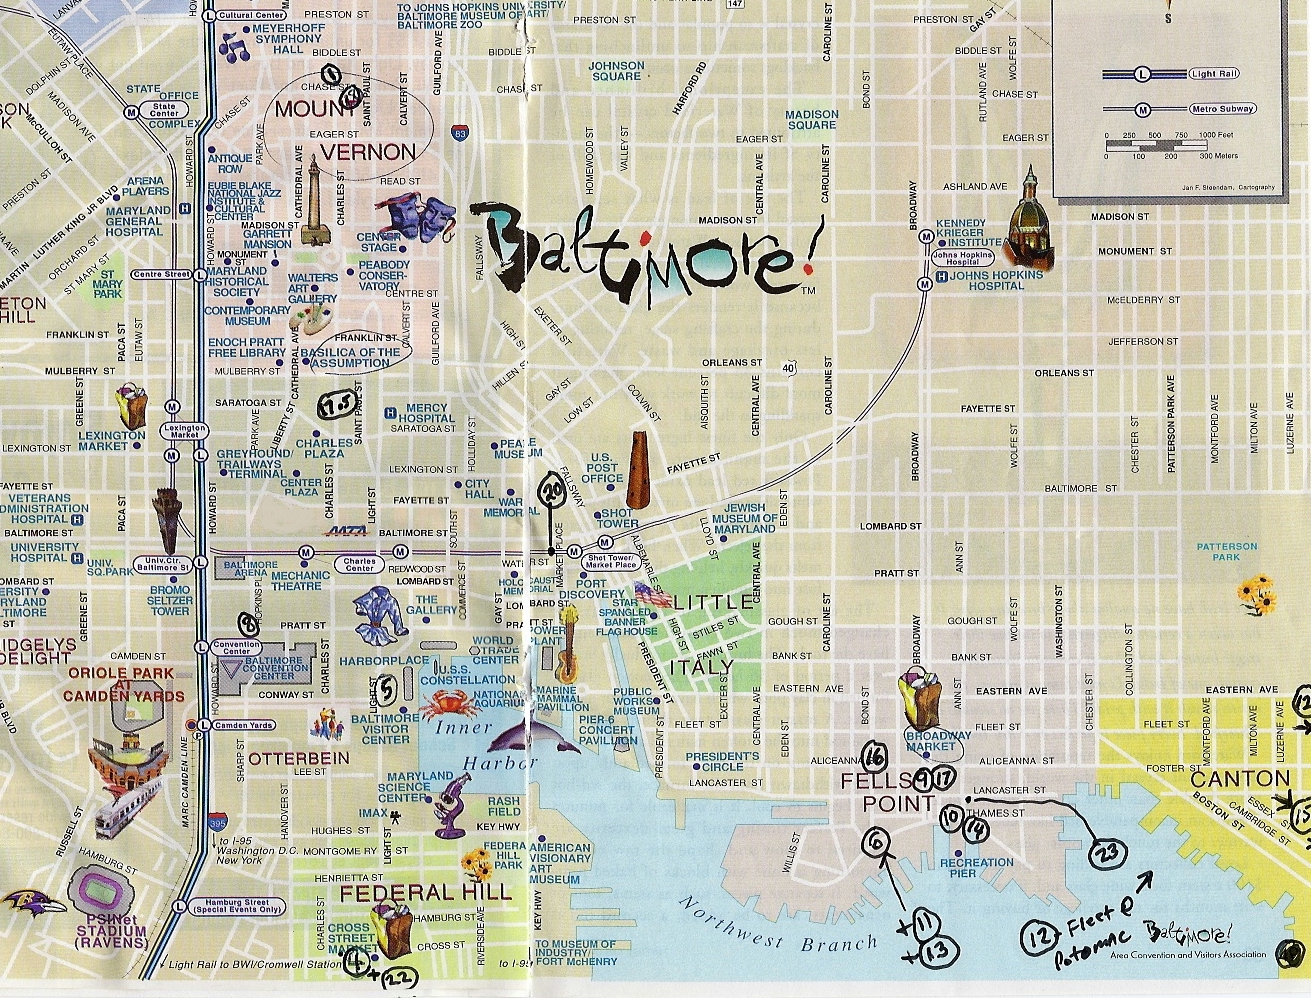 Brewtopia Events LLC Baltimore, Maryland Best Beer Places Downtown Map